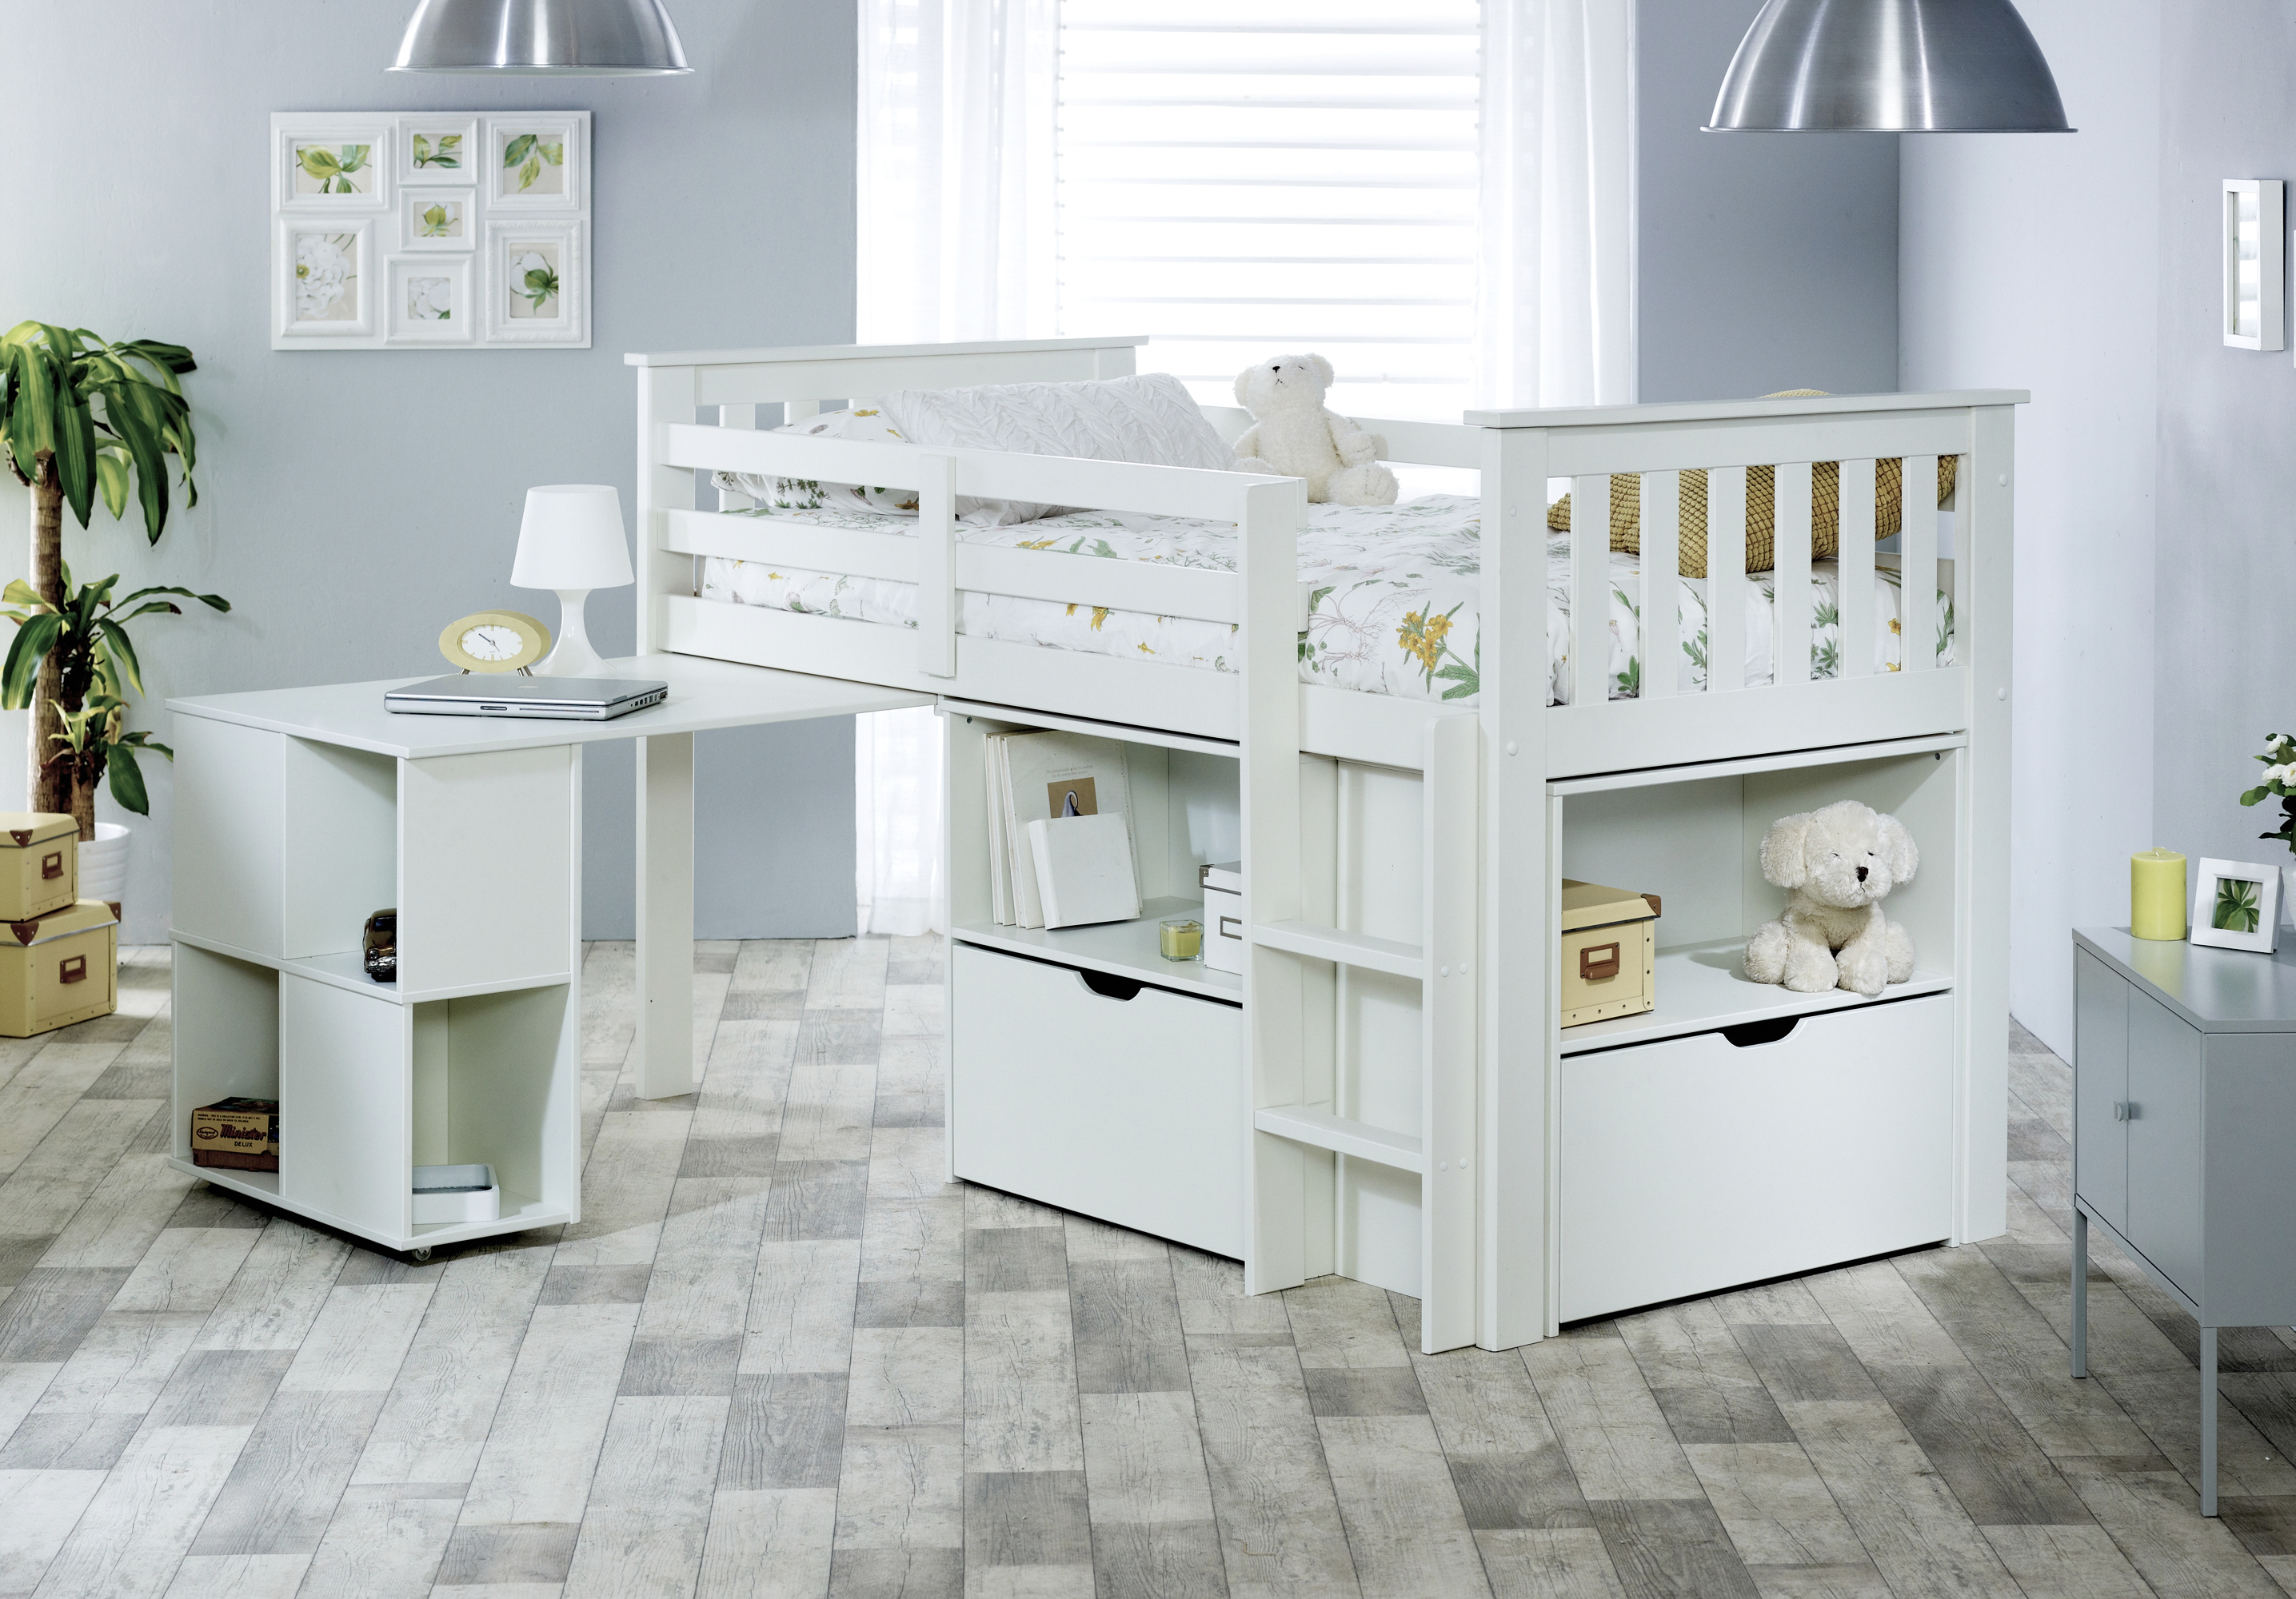 Picture of: Betternowm Co Uk Milo Kids Mid Sleeper Bed Frame With Spring Mattress Colour Available White Grey